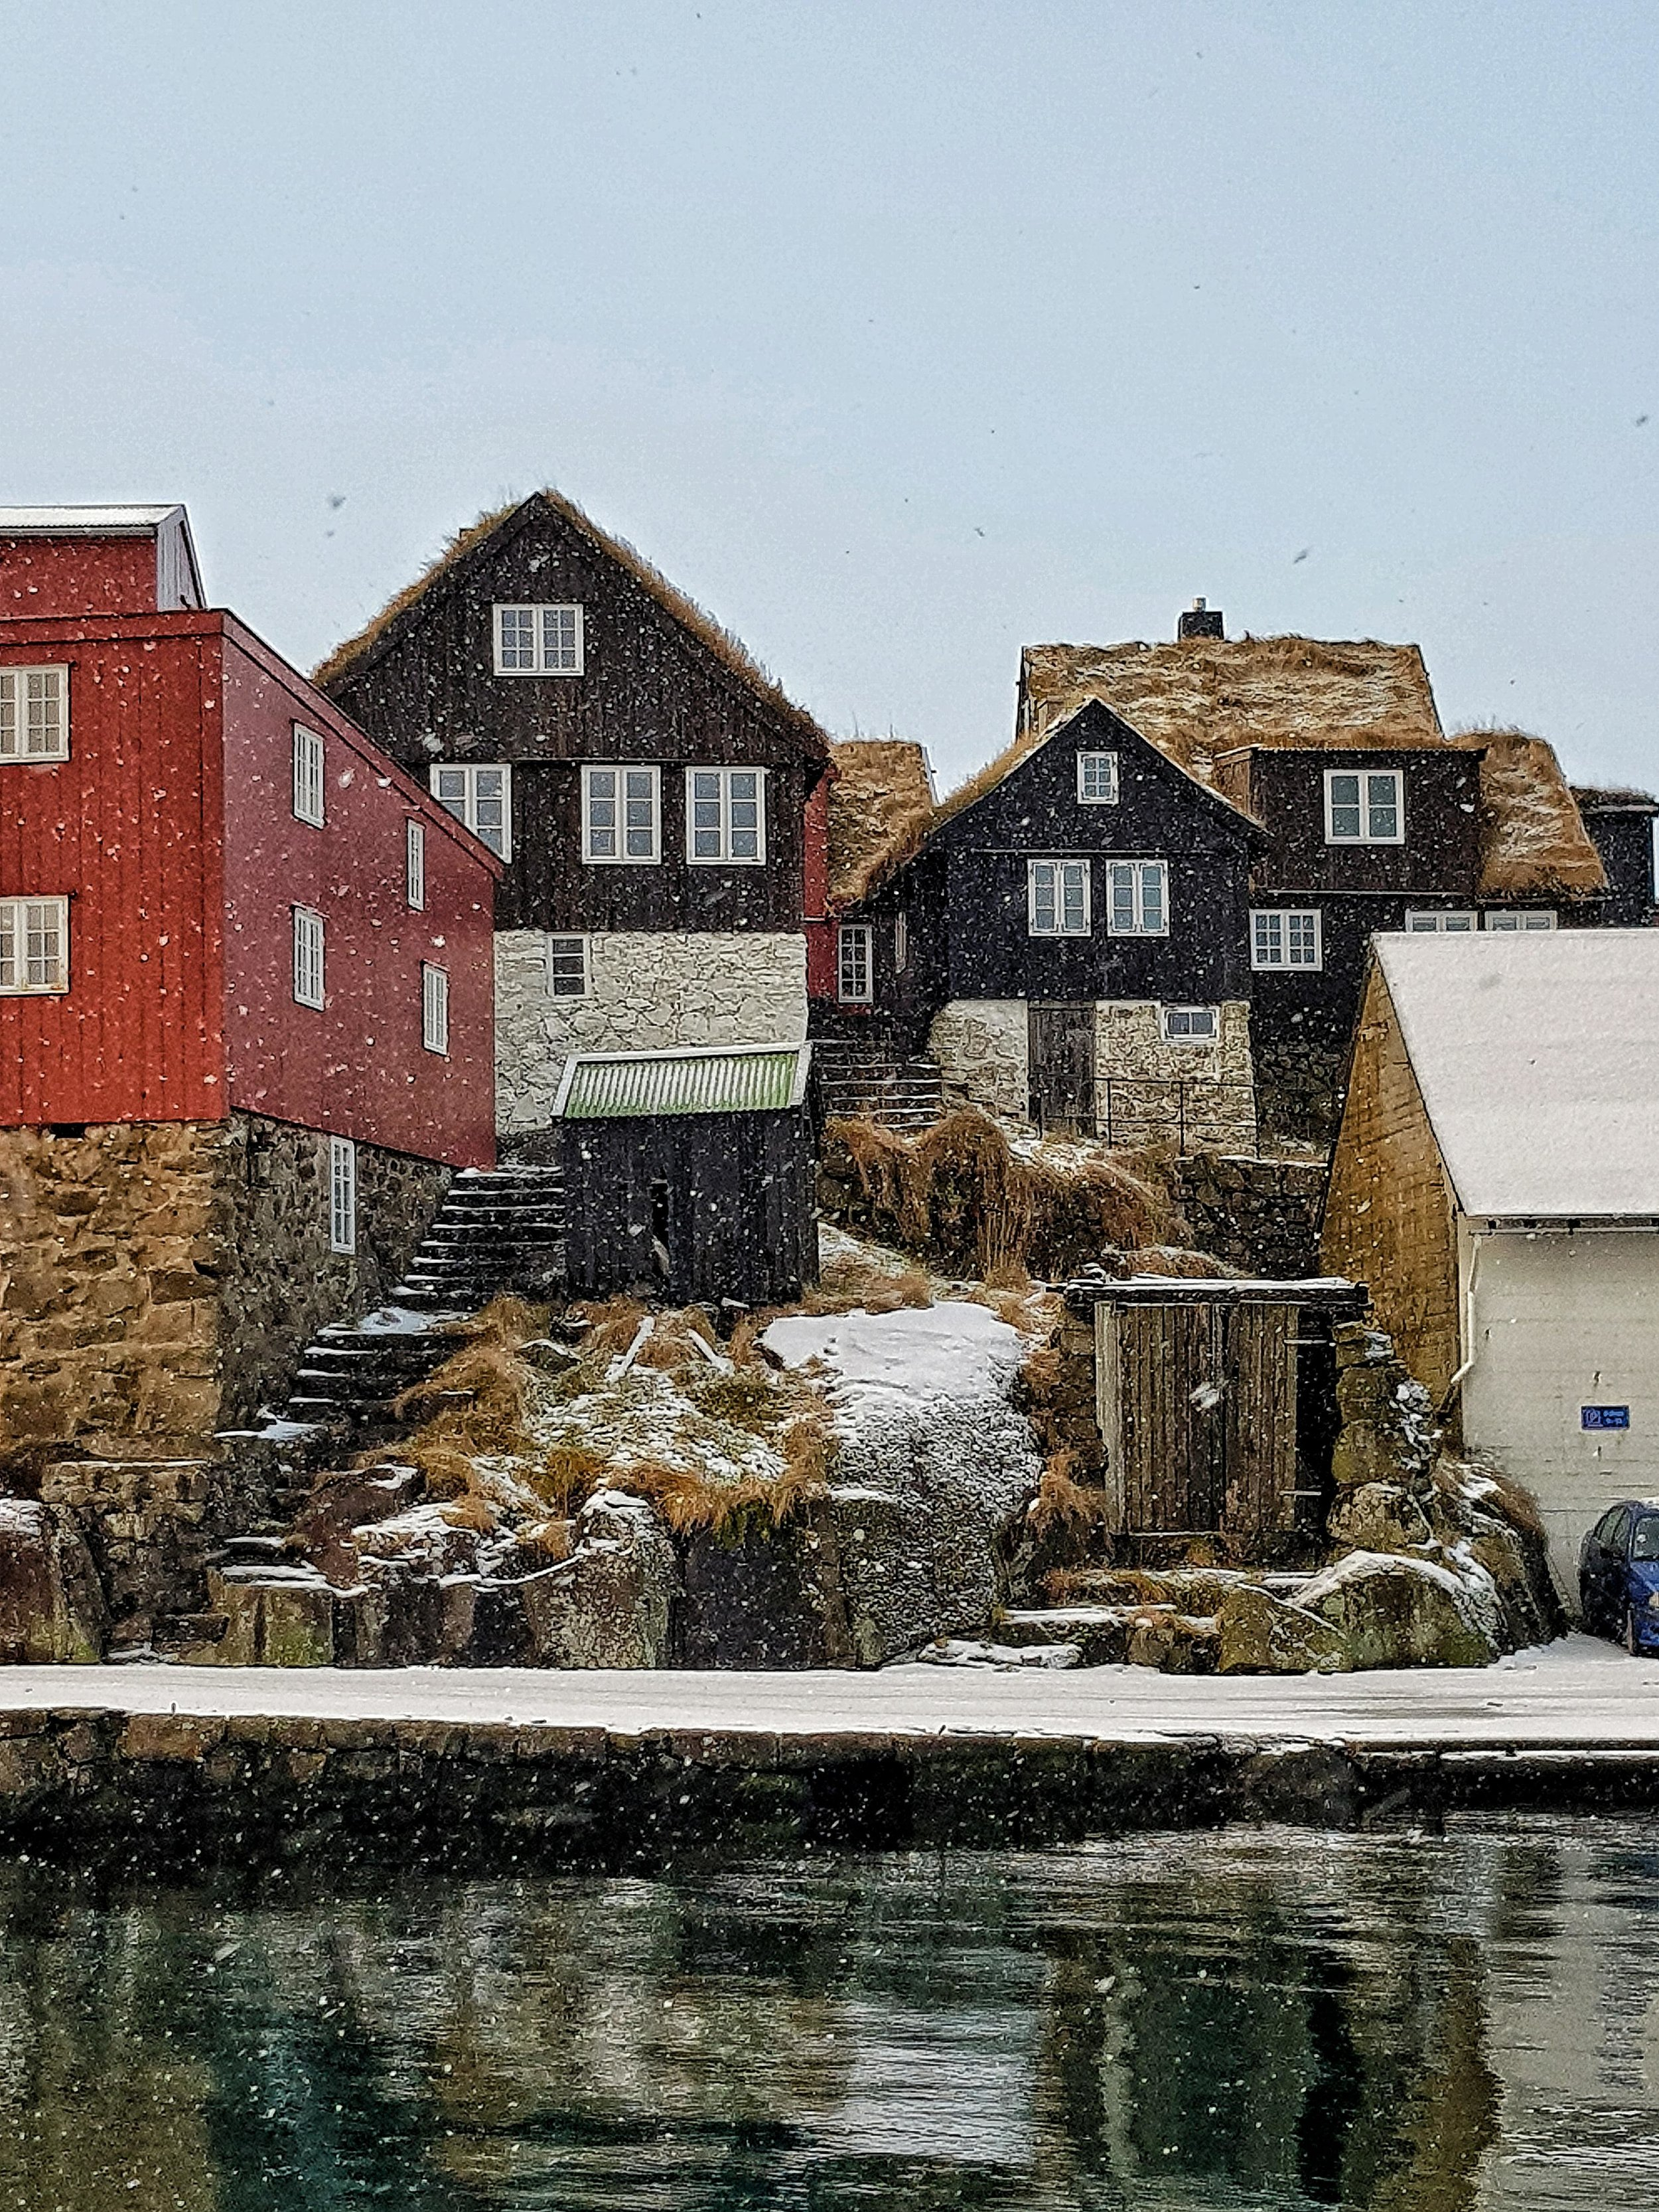 Tórshavn is the capital and largest town of the Faroe Islands.